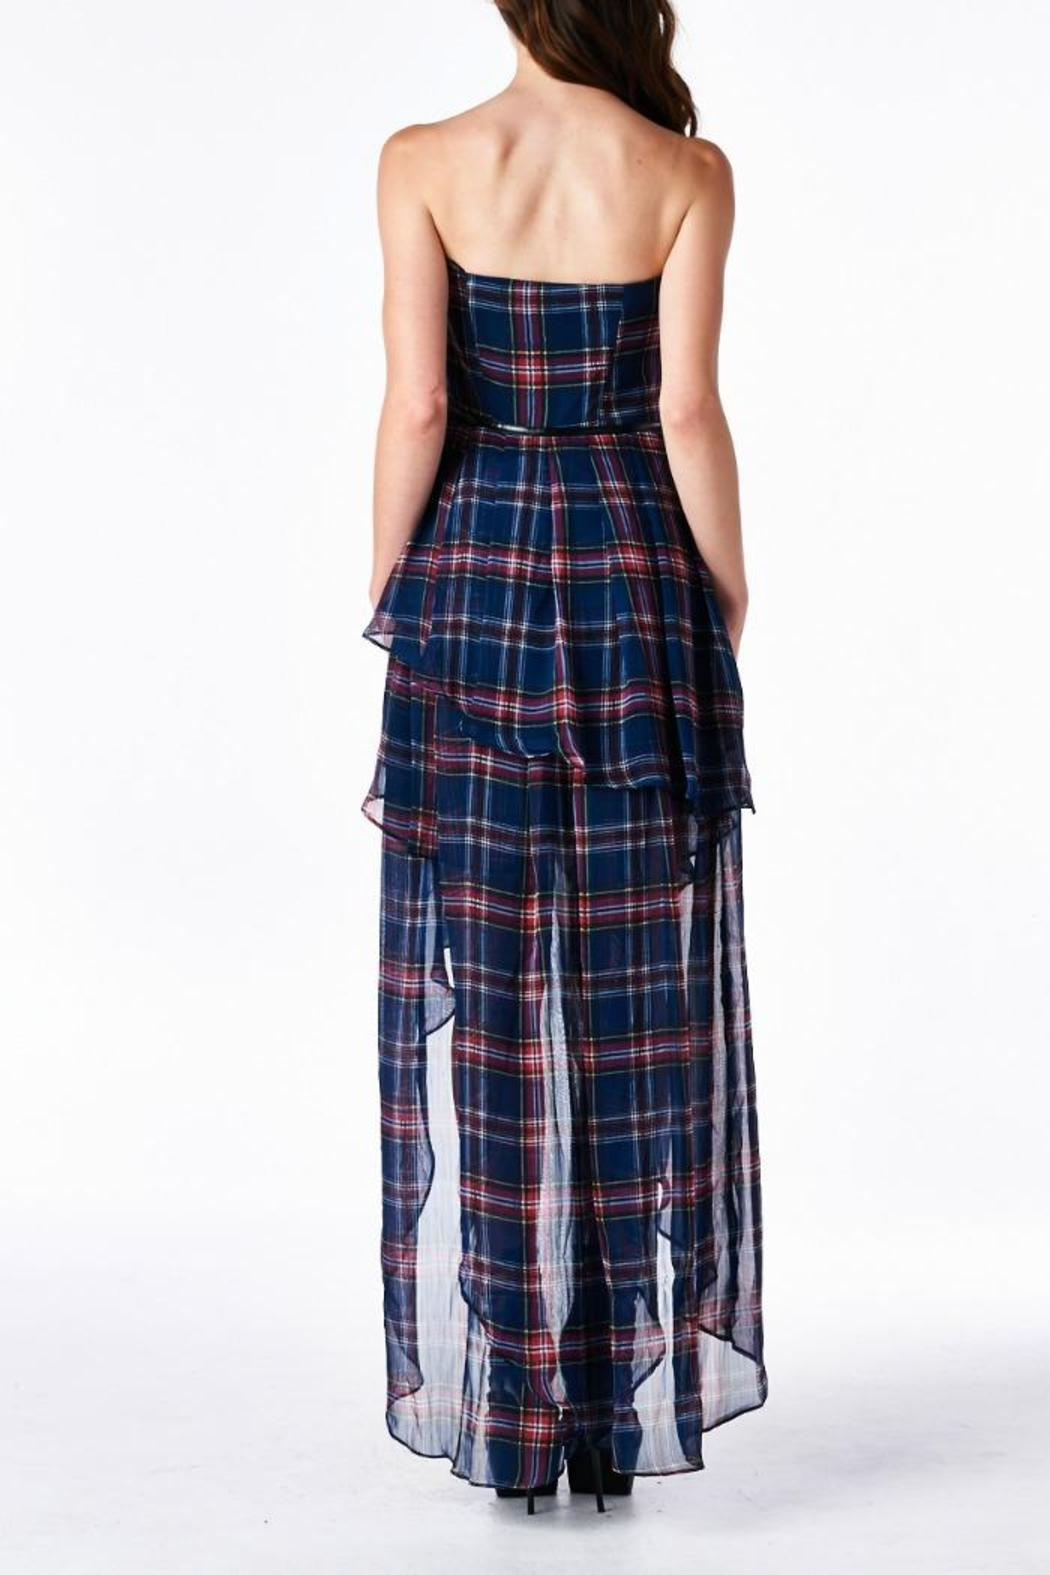 MHGS Plaid Sweetheart Dress - Back Cropped Image